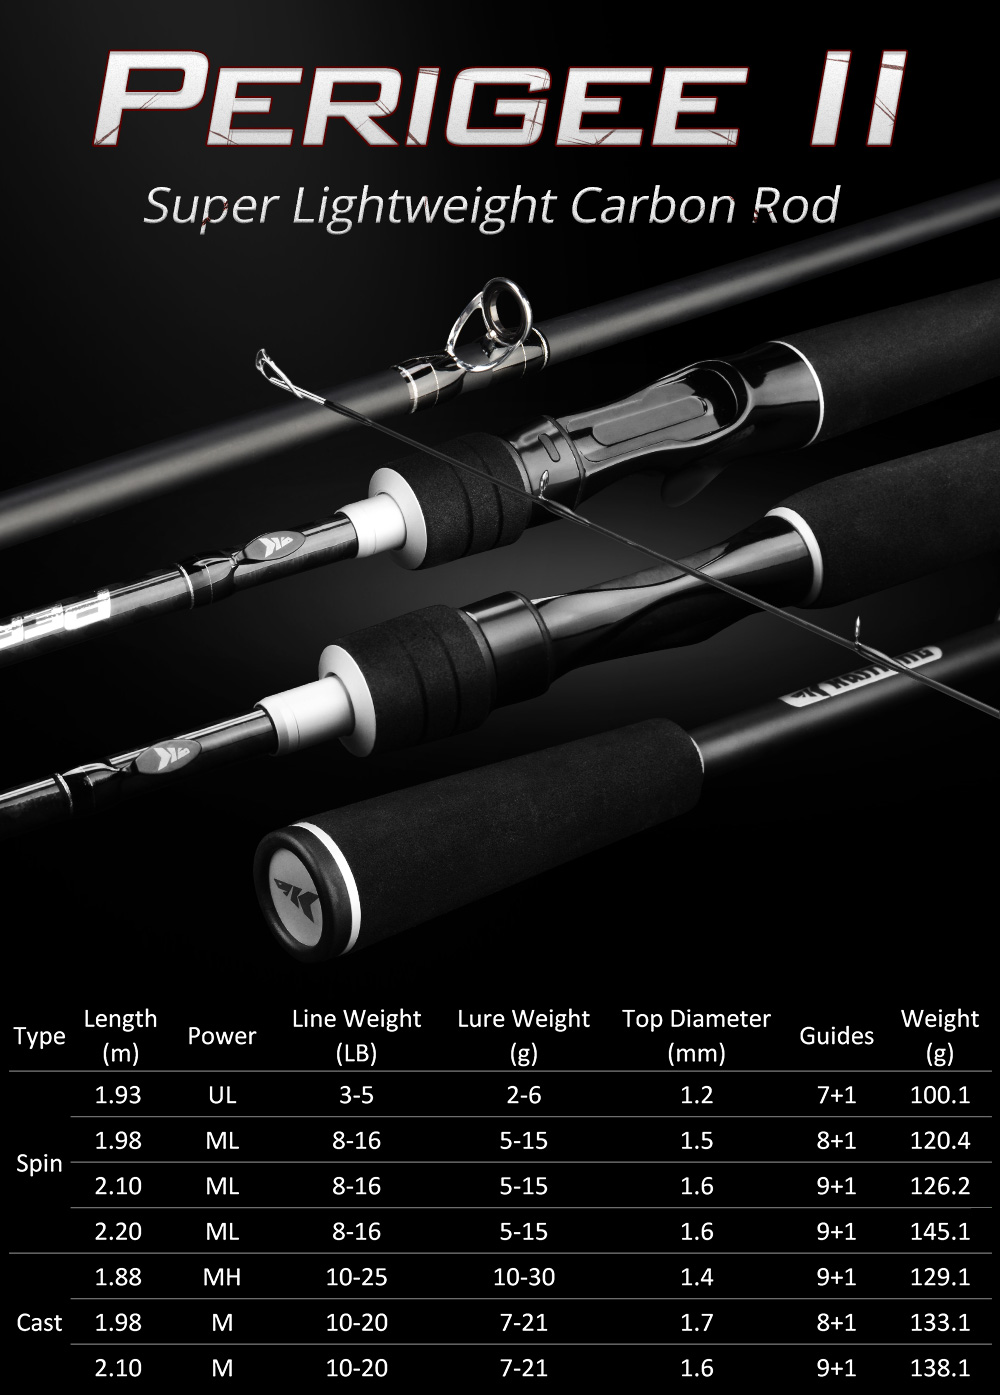 Perigee II Cast & Spin Rod PC--Details (1)